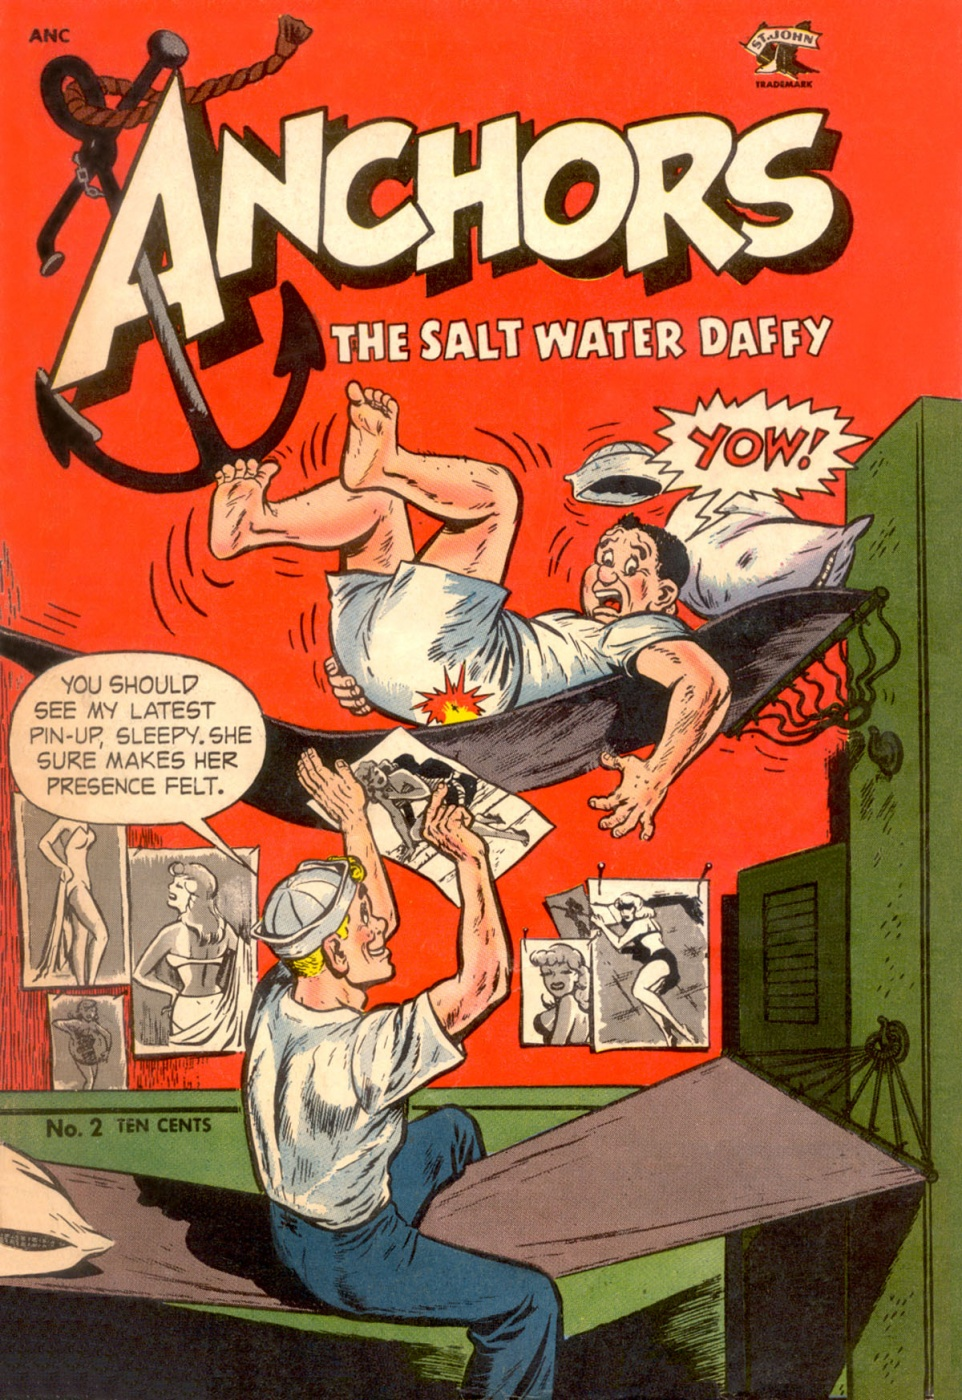 Funny Comics: Anchors the Salt Water Daffy #1